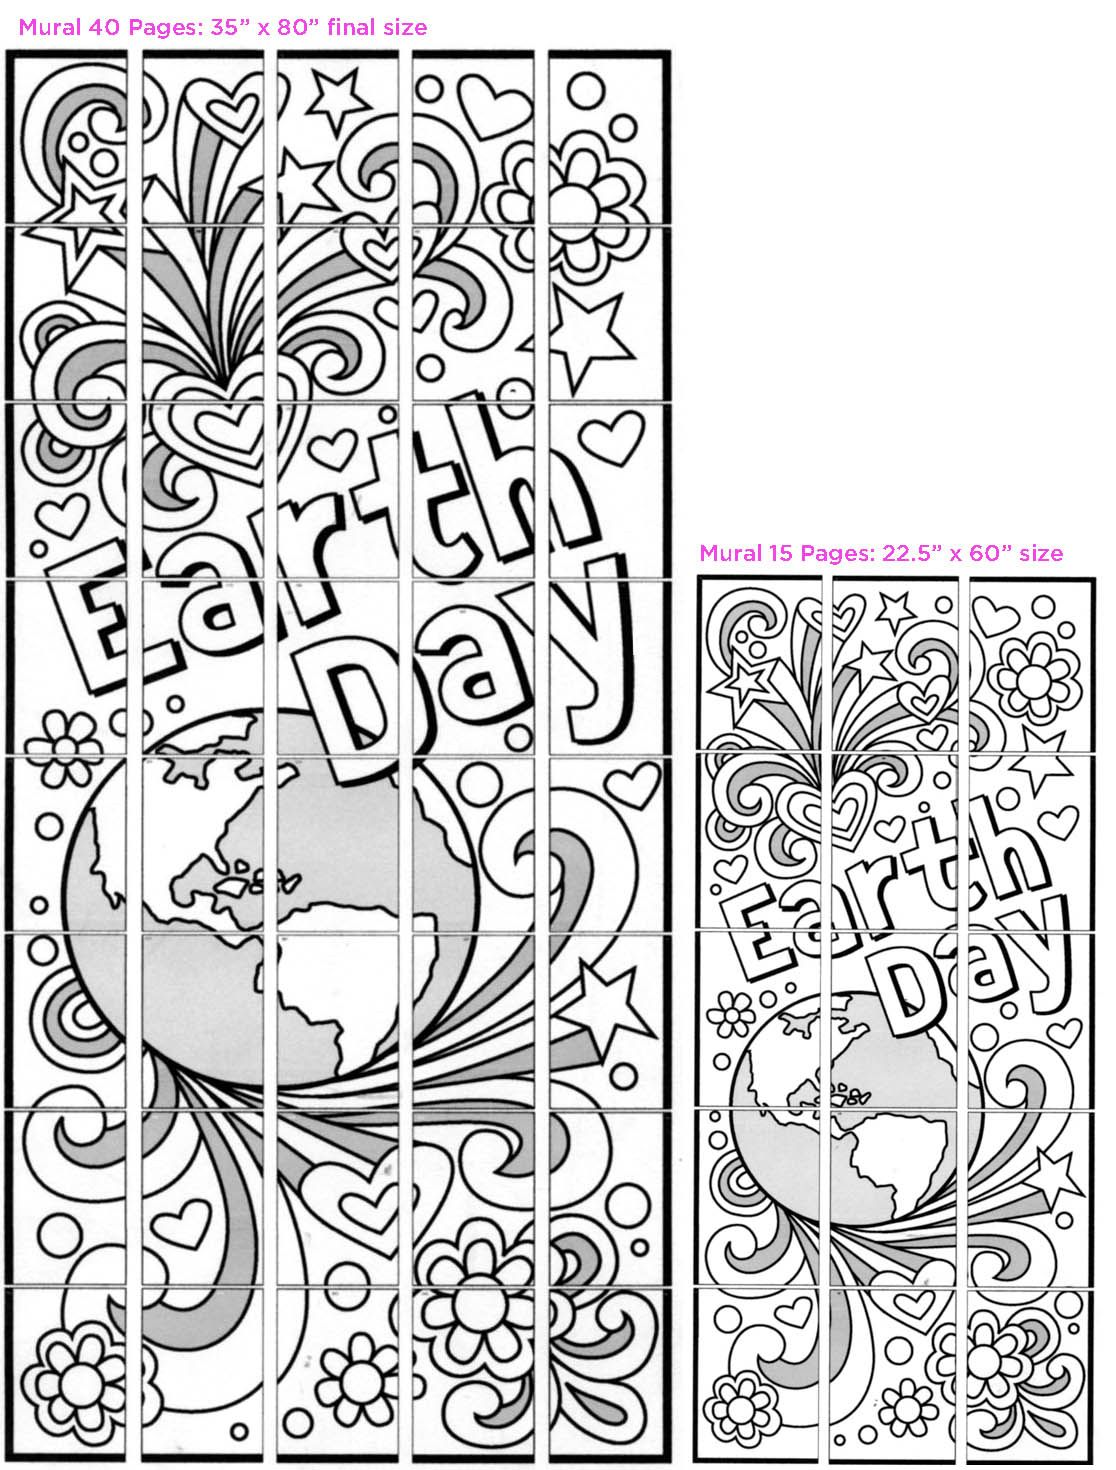 Doodle earth day murals diagram doodle ccuart Gallery